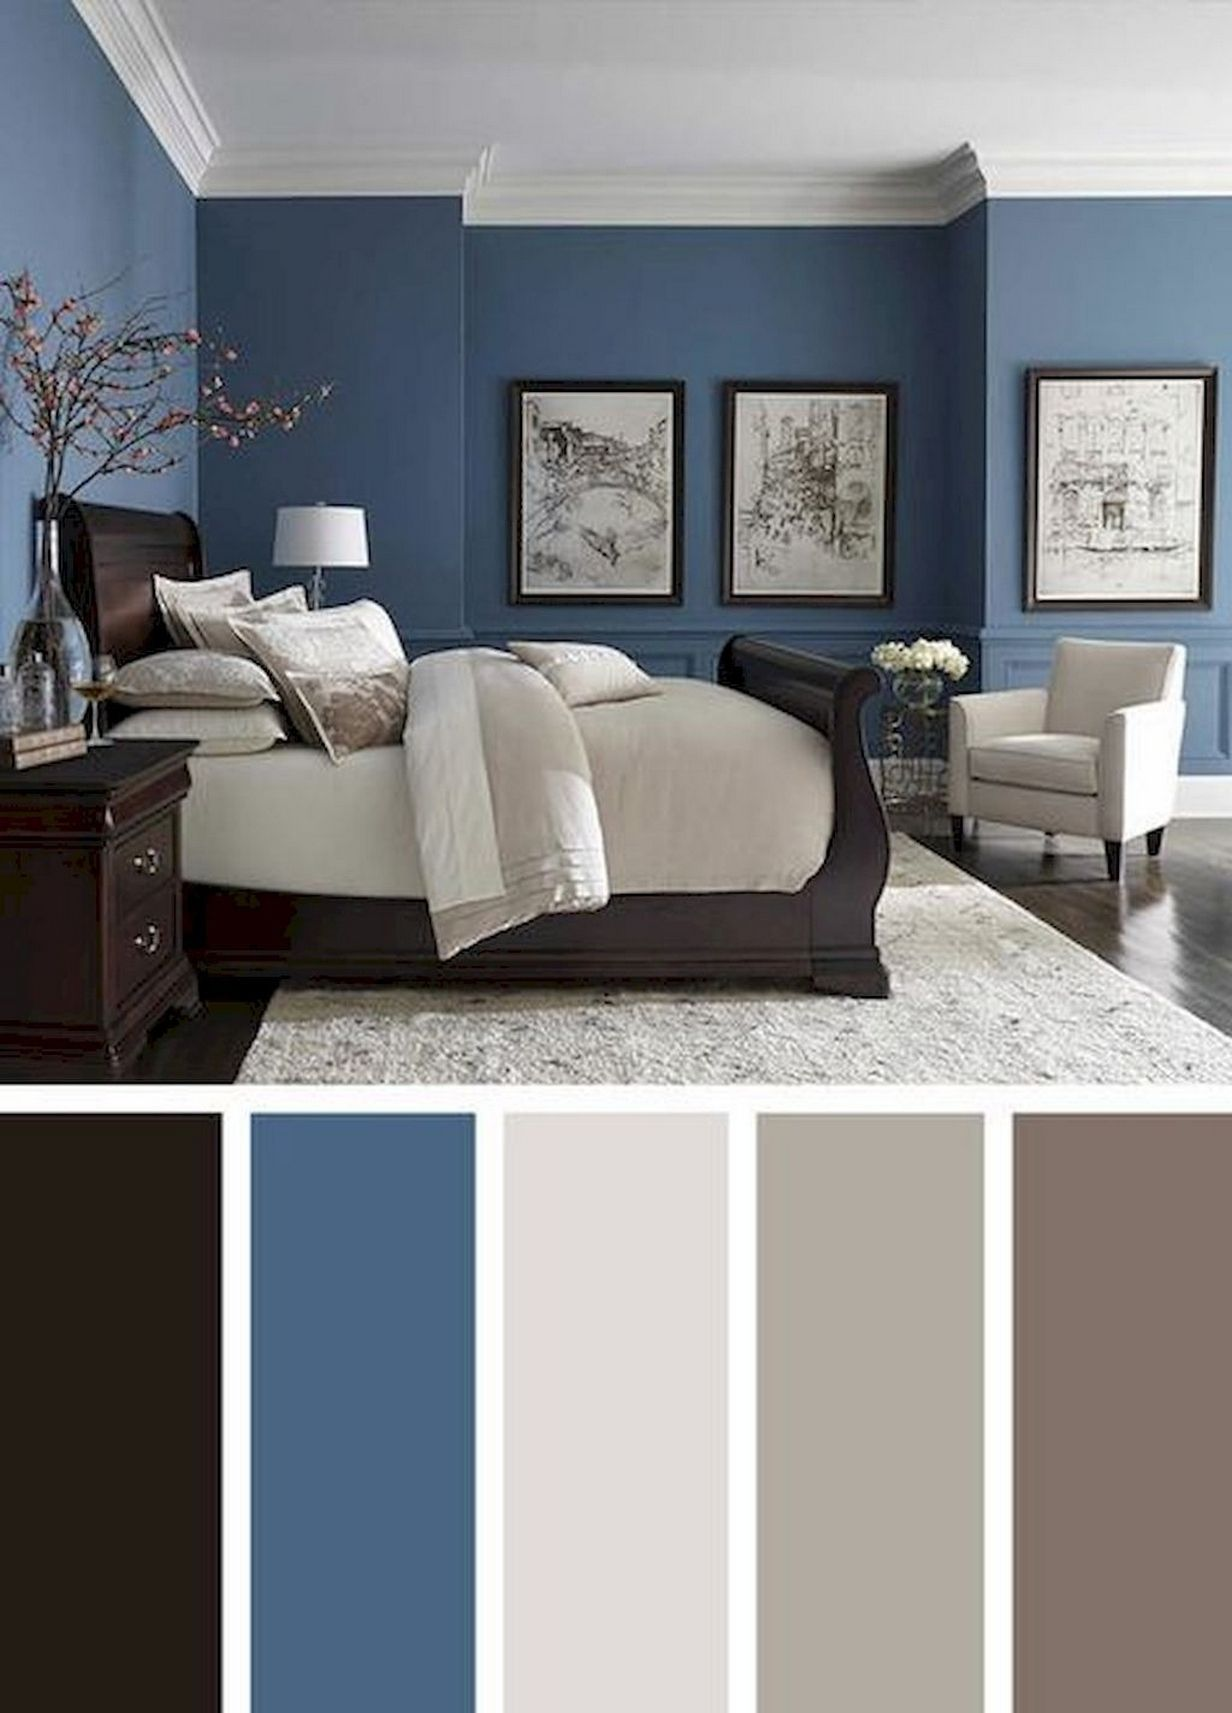 28 Beautiful Living Room Colour Palette Ideas 4 Tips For Using Colour Well 28 Beautiful Bedroom Colors Best Bedroom Colors Master Bedroom Colors